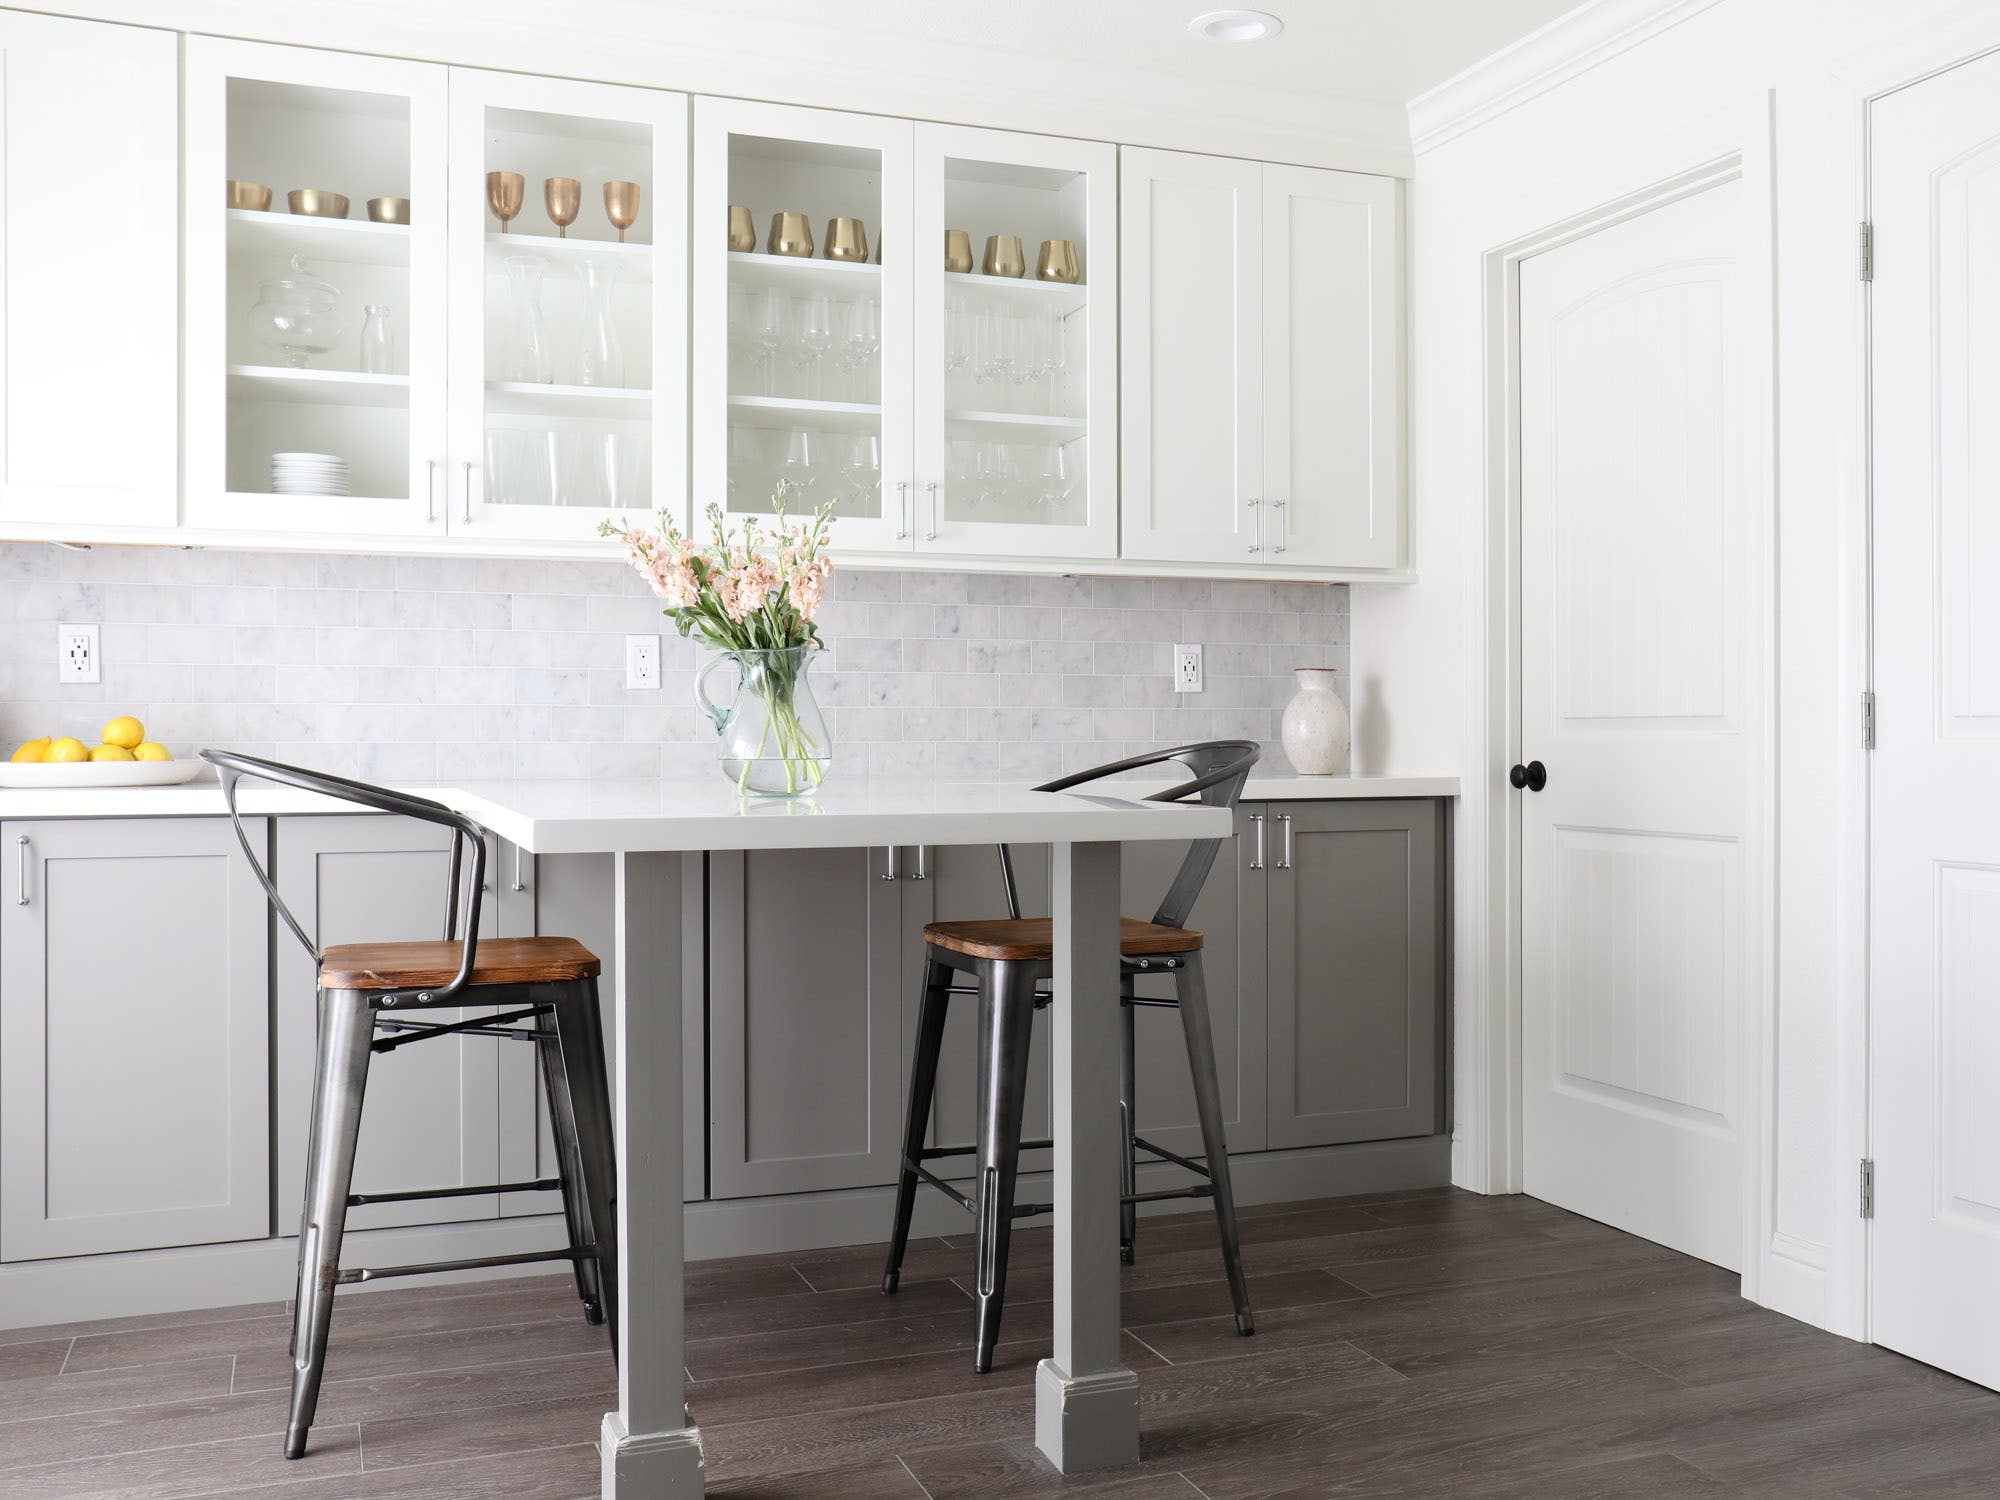 CliqStudios shaker-style Dayton cabinets in Studio Gray and Painted White